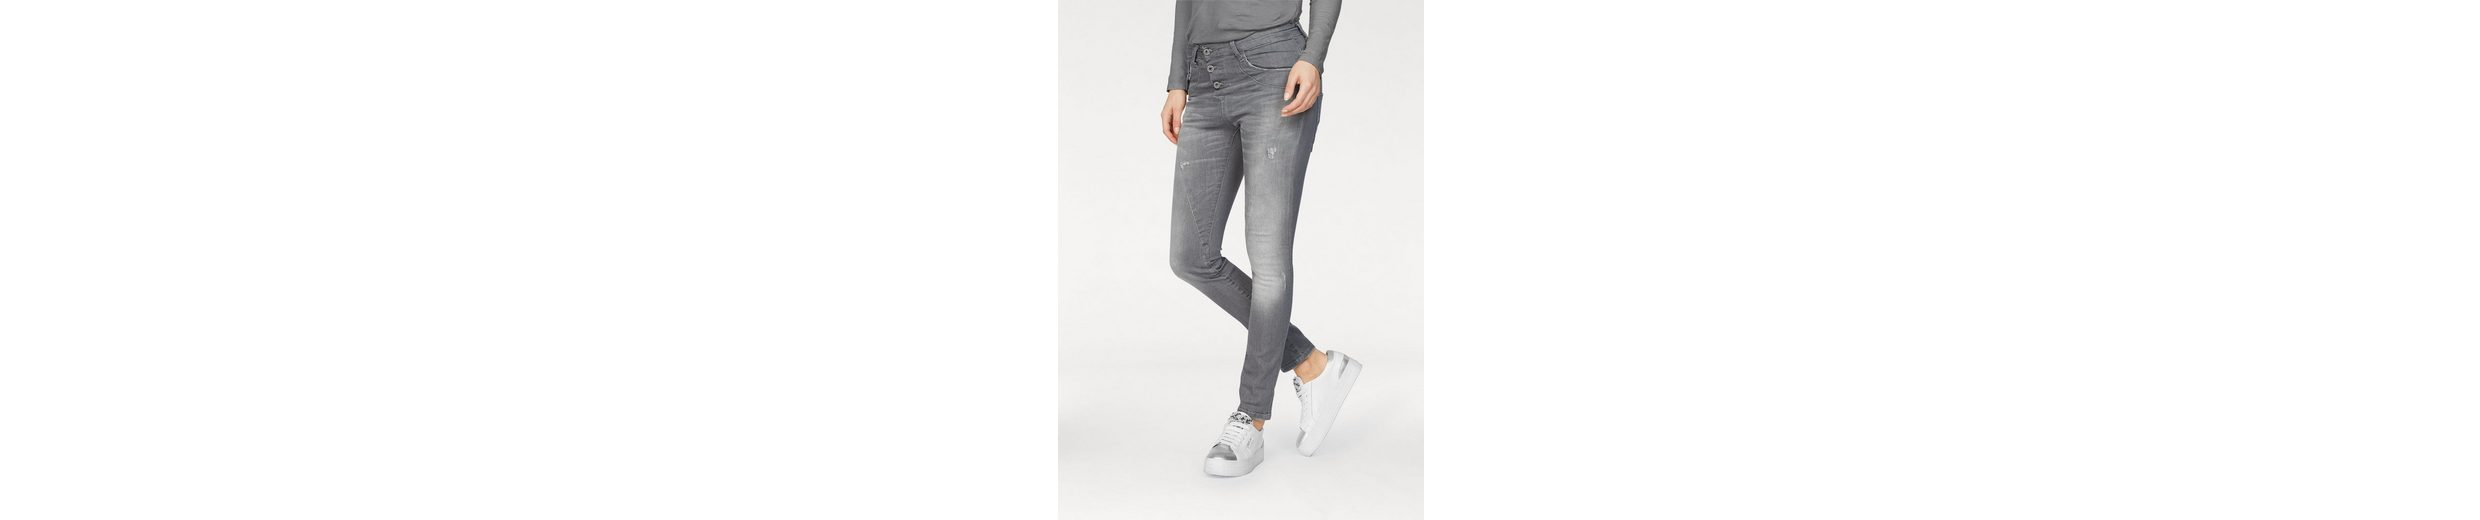 Please Jeans Boyfriend-Jeans P78A, mit Metallabel in Herzform